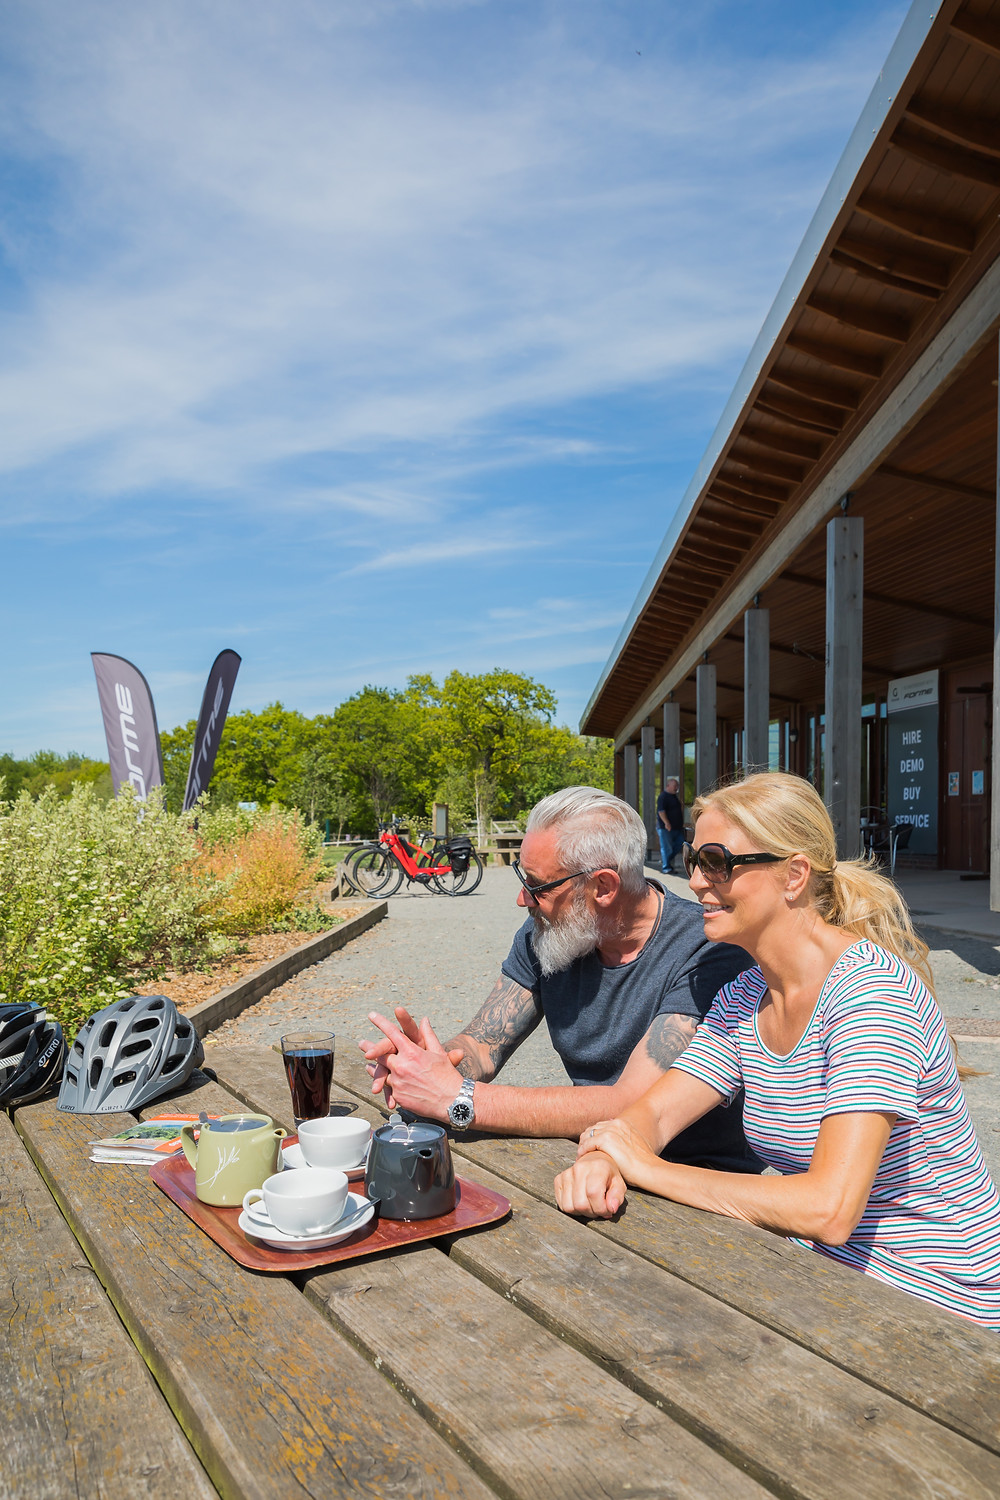 Hicks Lodge Cycling Centre, in the heart of the National Forest